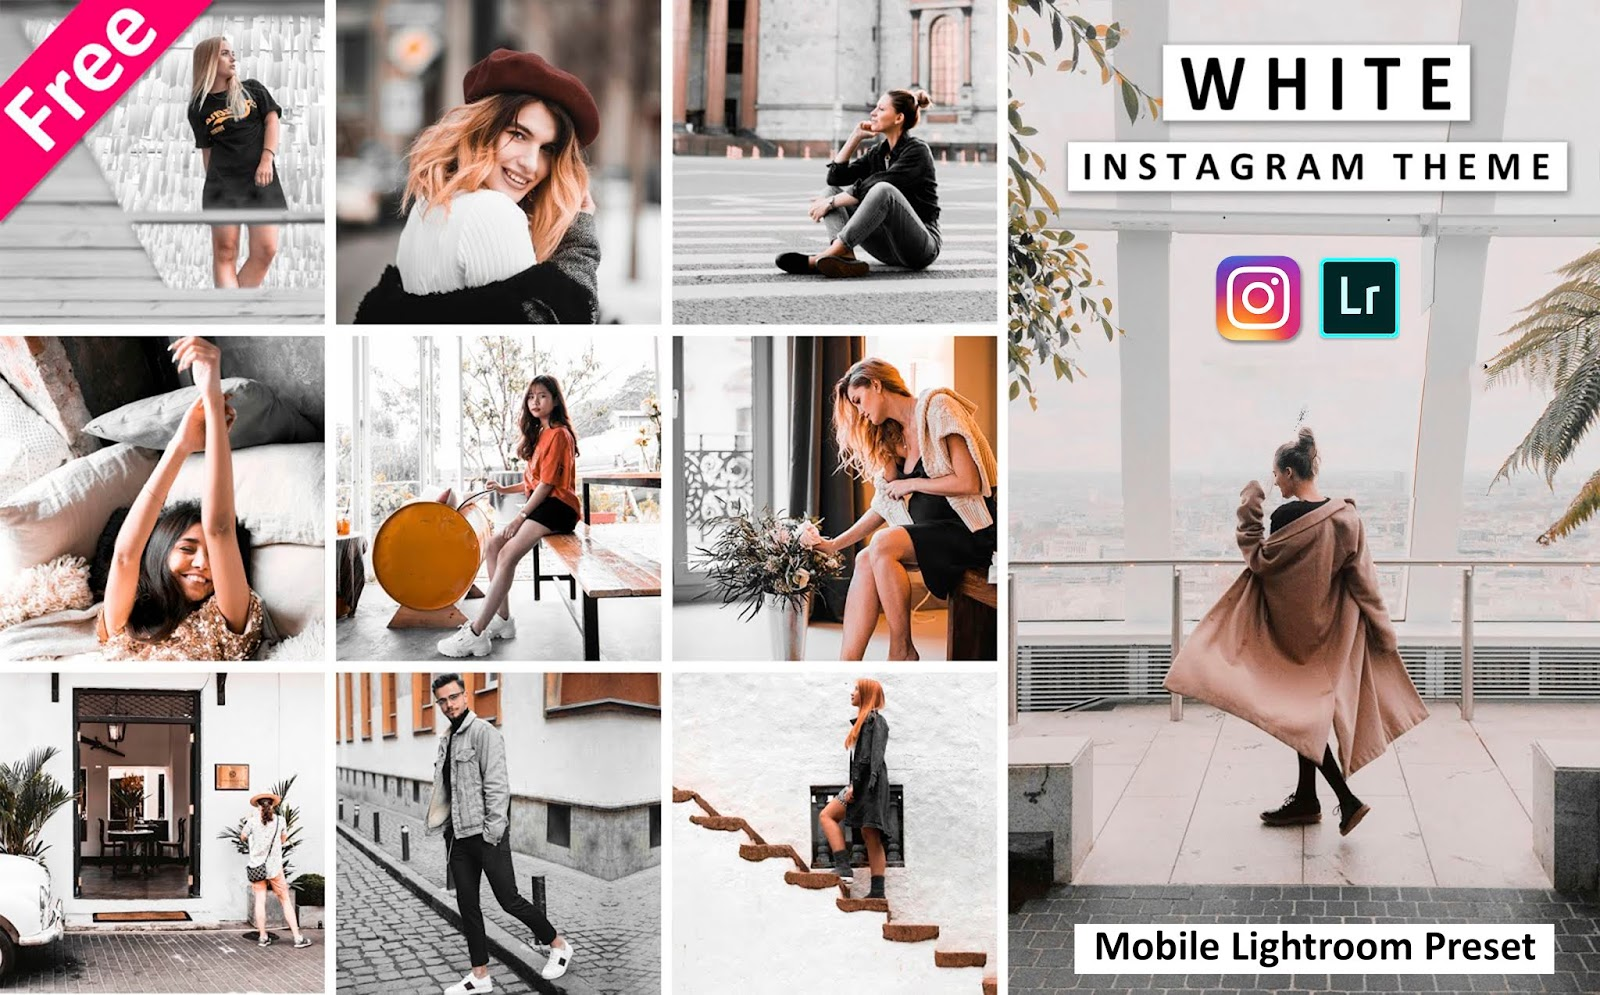 Download Instagram White Lightroom Preset for Free | How to Create White Theme of Instagram in Lightroom